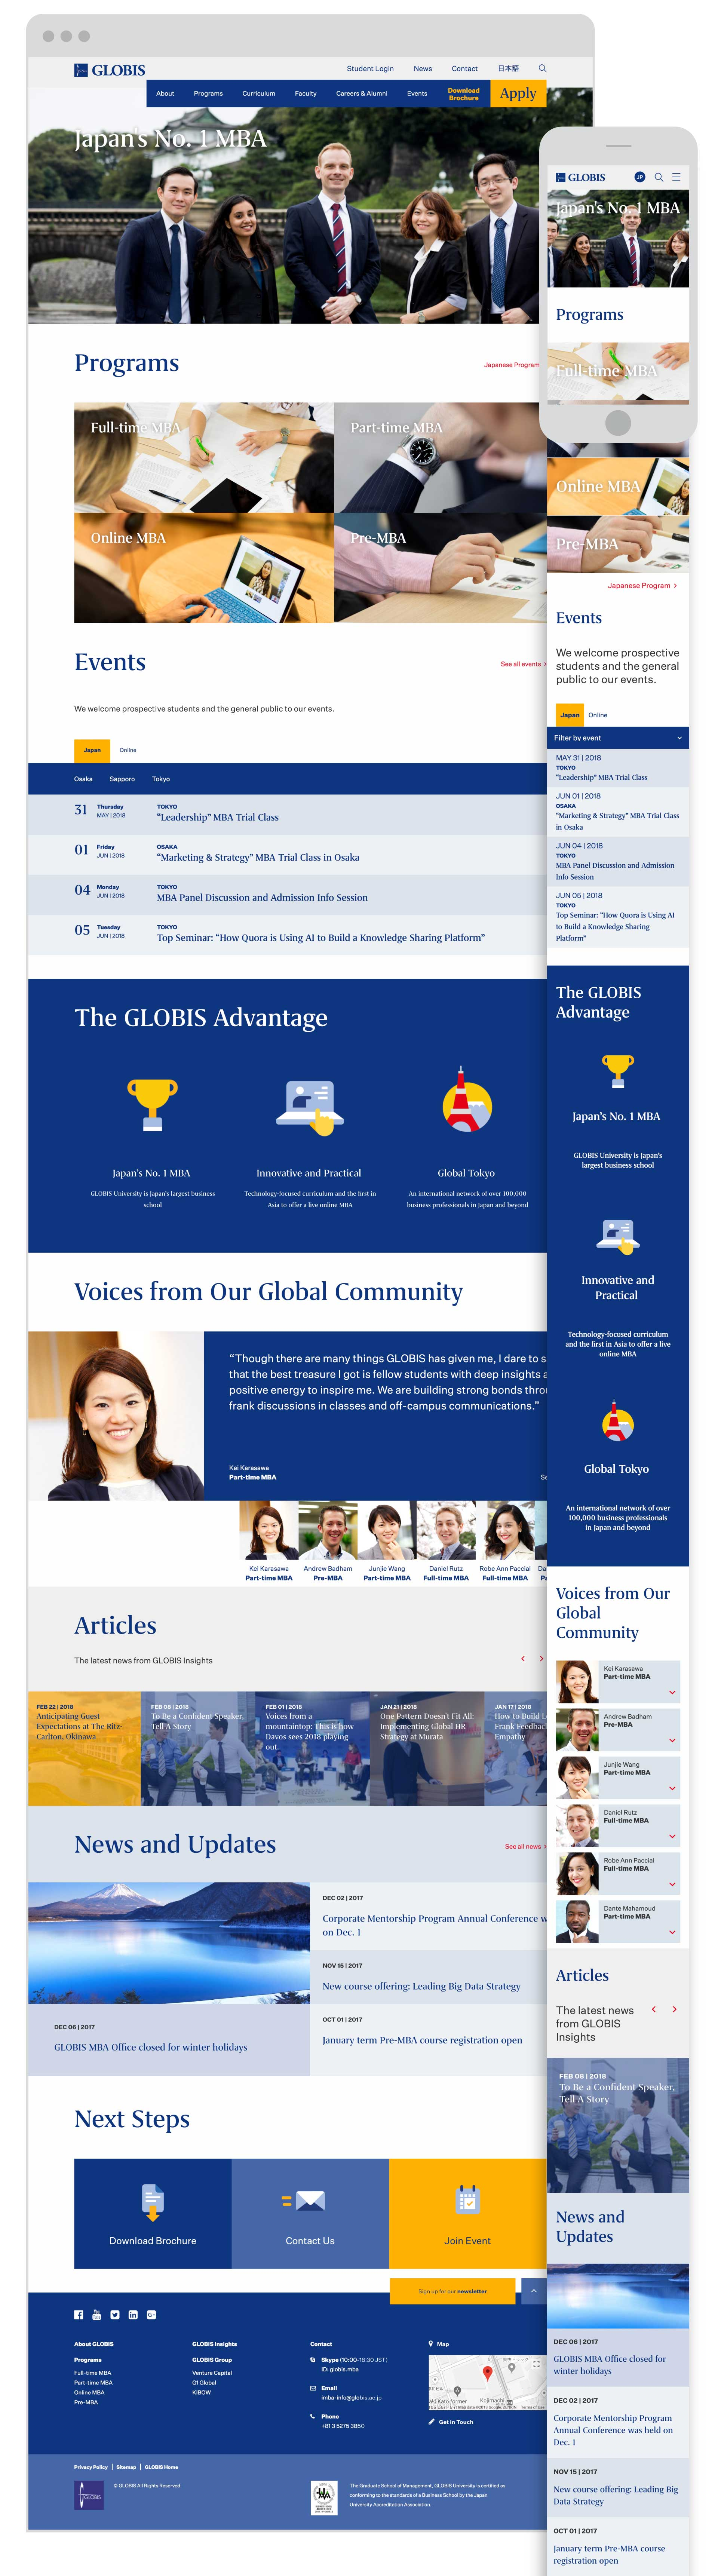 Globis University - Responsive UI Layout Design - Homepage